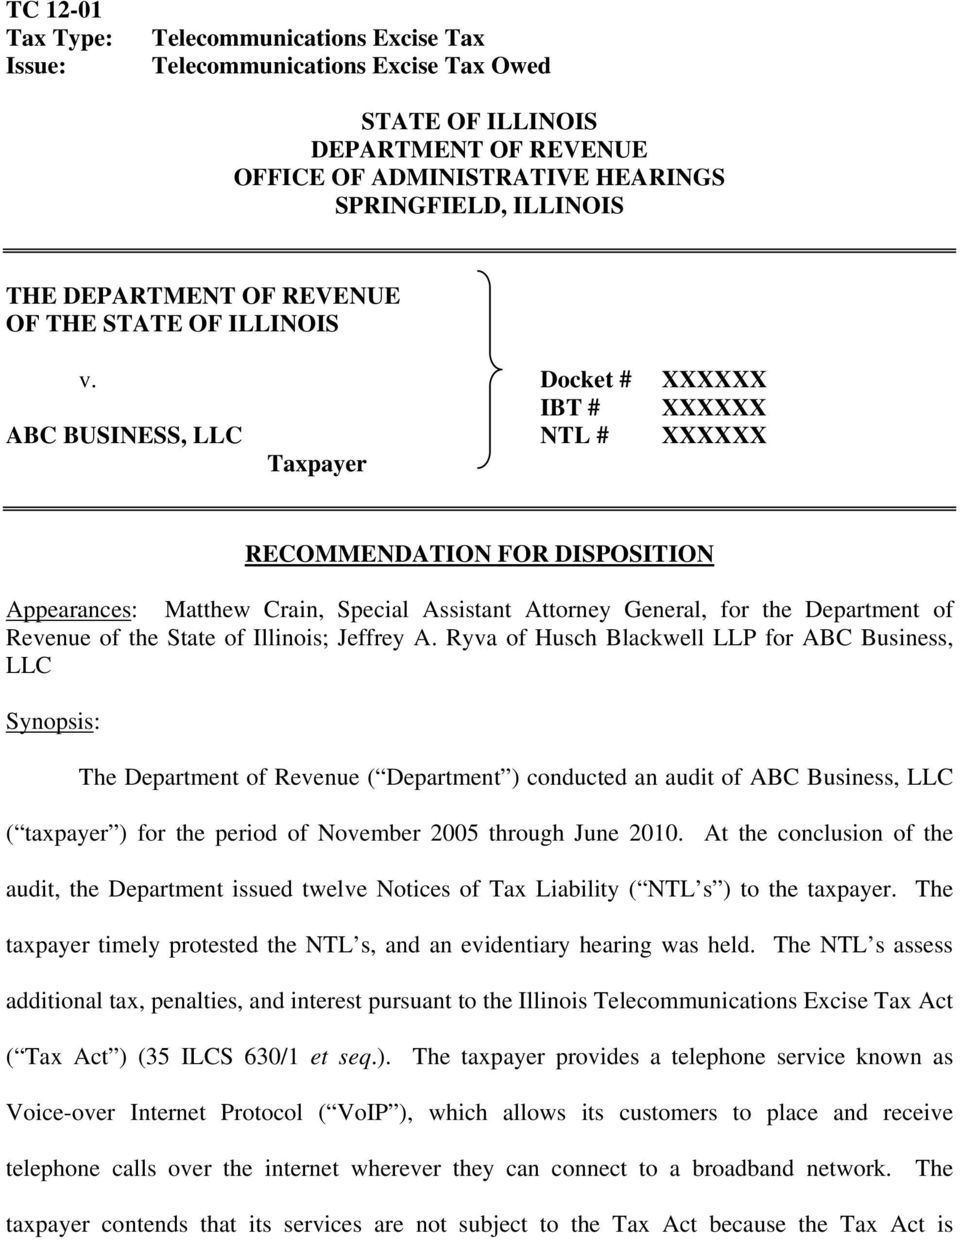 Docket # XXXXXX IBT # XXXXXX ABC BUSINESS, LLC NTL # XXXXXX Taxpayer RECOMMENDATION FOR DISPOSITION Appearances: Matthew Crain, Special Assistant Attorney General, for the Department of Revenue of